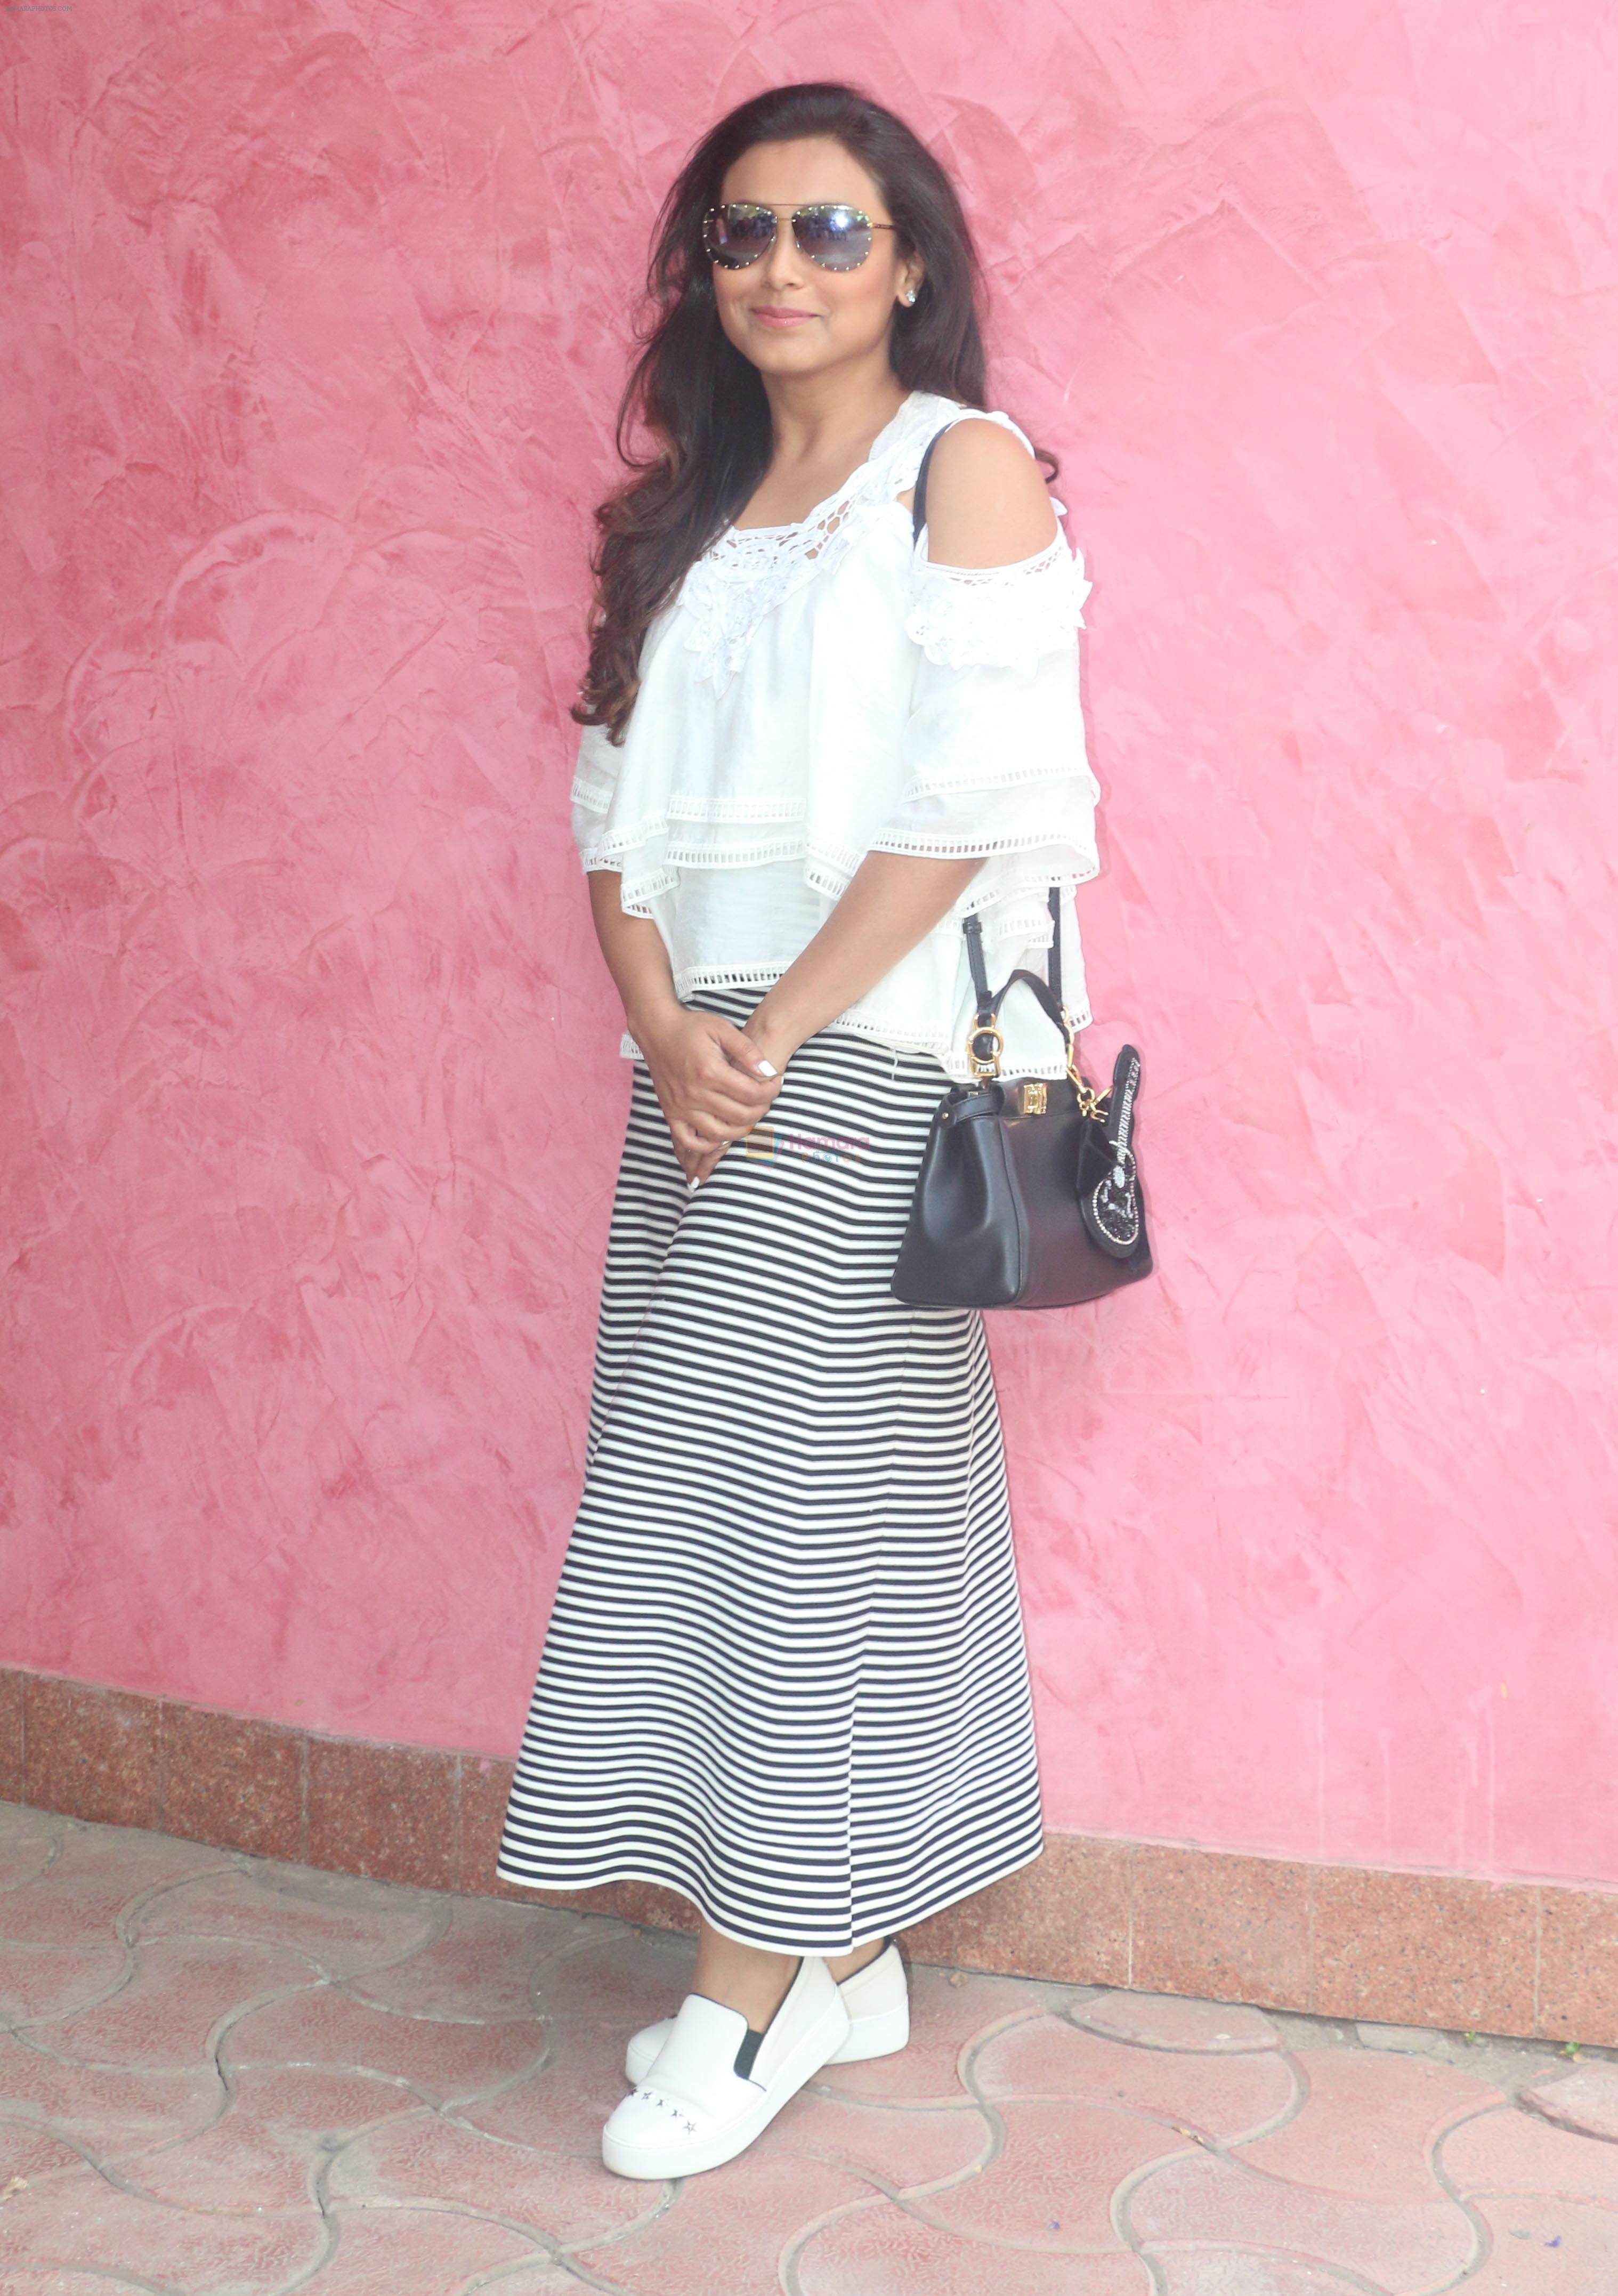 Rani Mukharjee at Yashraj studios in andheri, mumbai on 6th April 2018